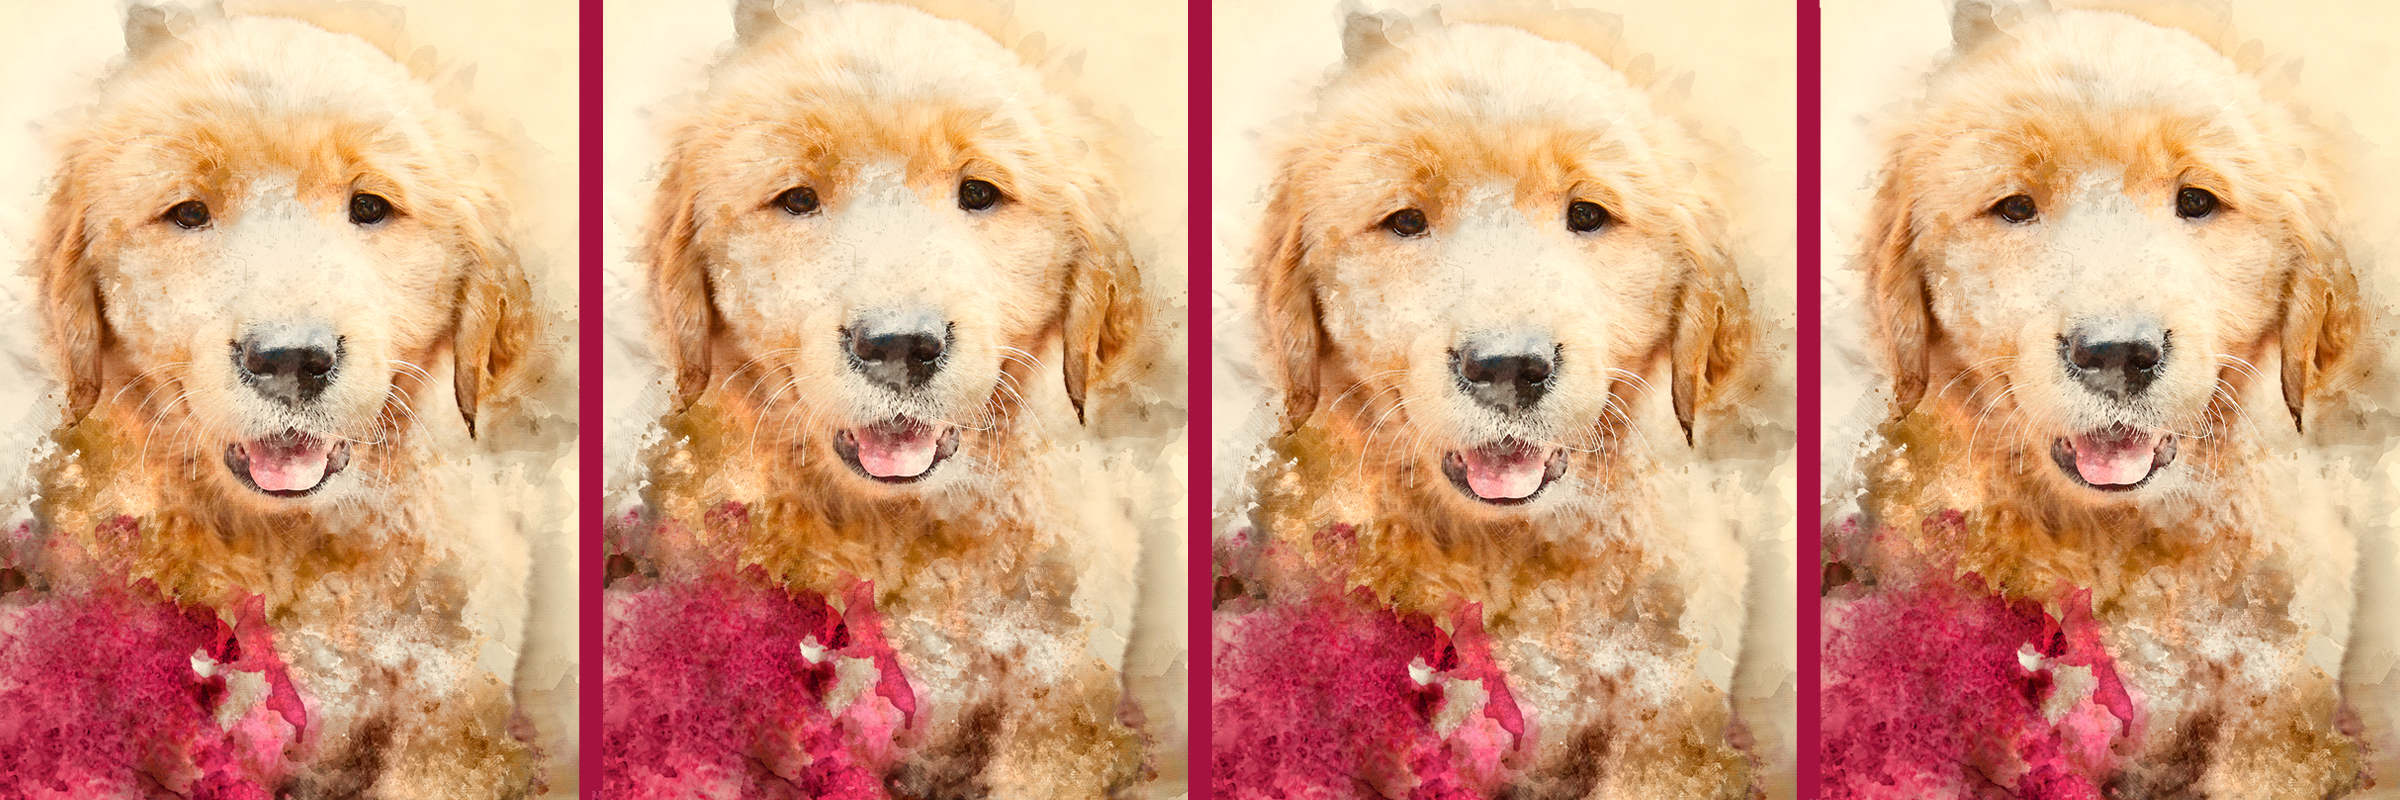 A watercolor painting of a Golden Retriever puppy, repeated four times across the width of the banner.